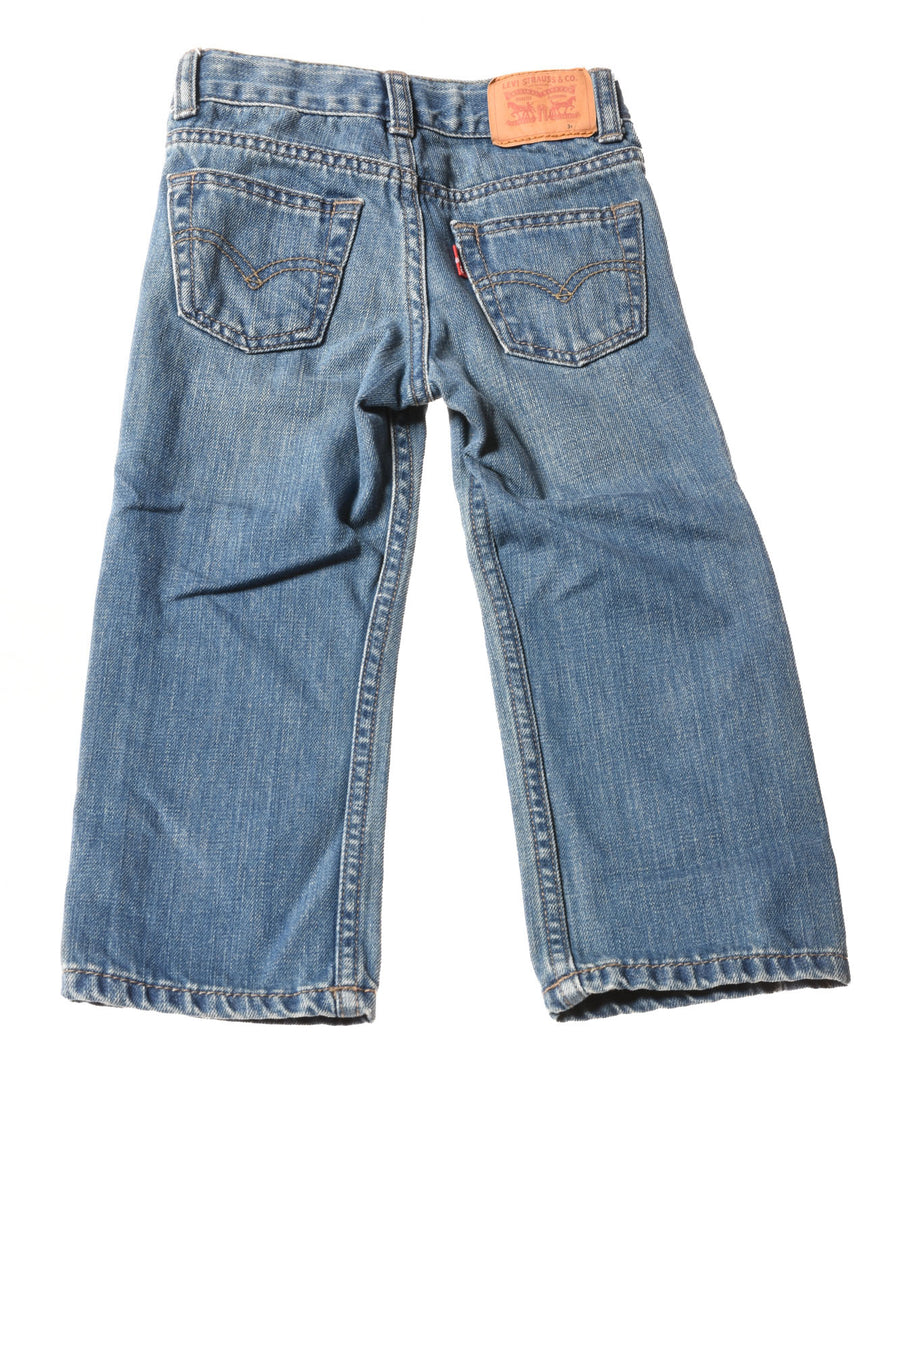 USED Levi's Toddler Boy's Jeans 3T Blue